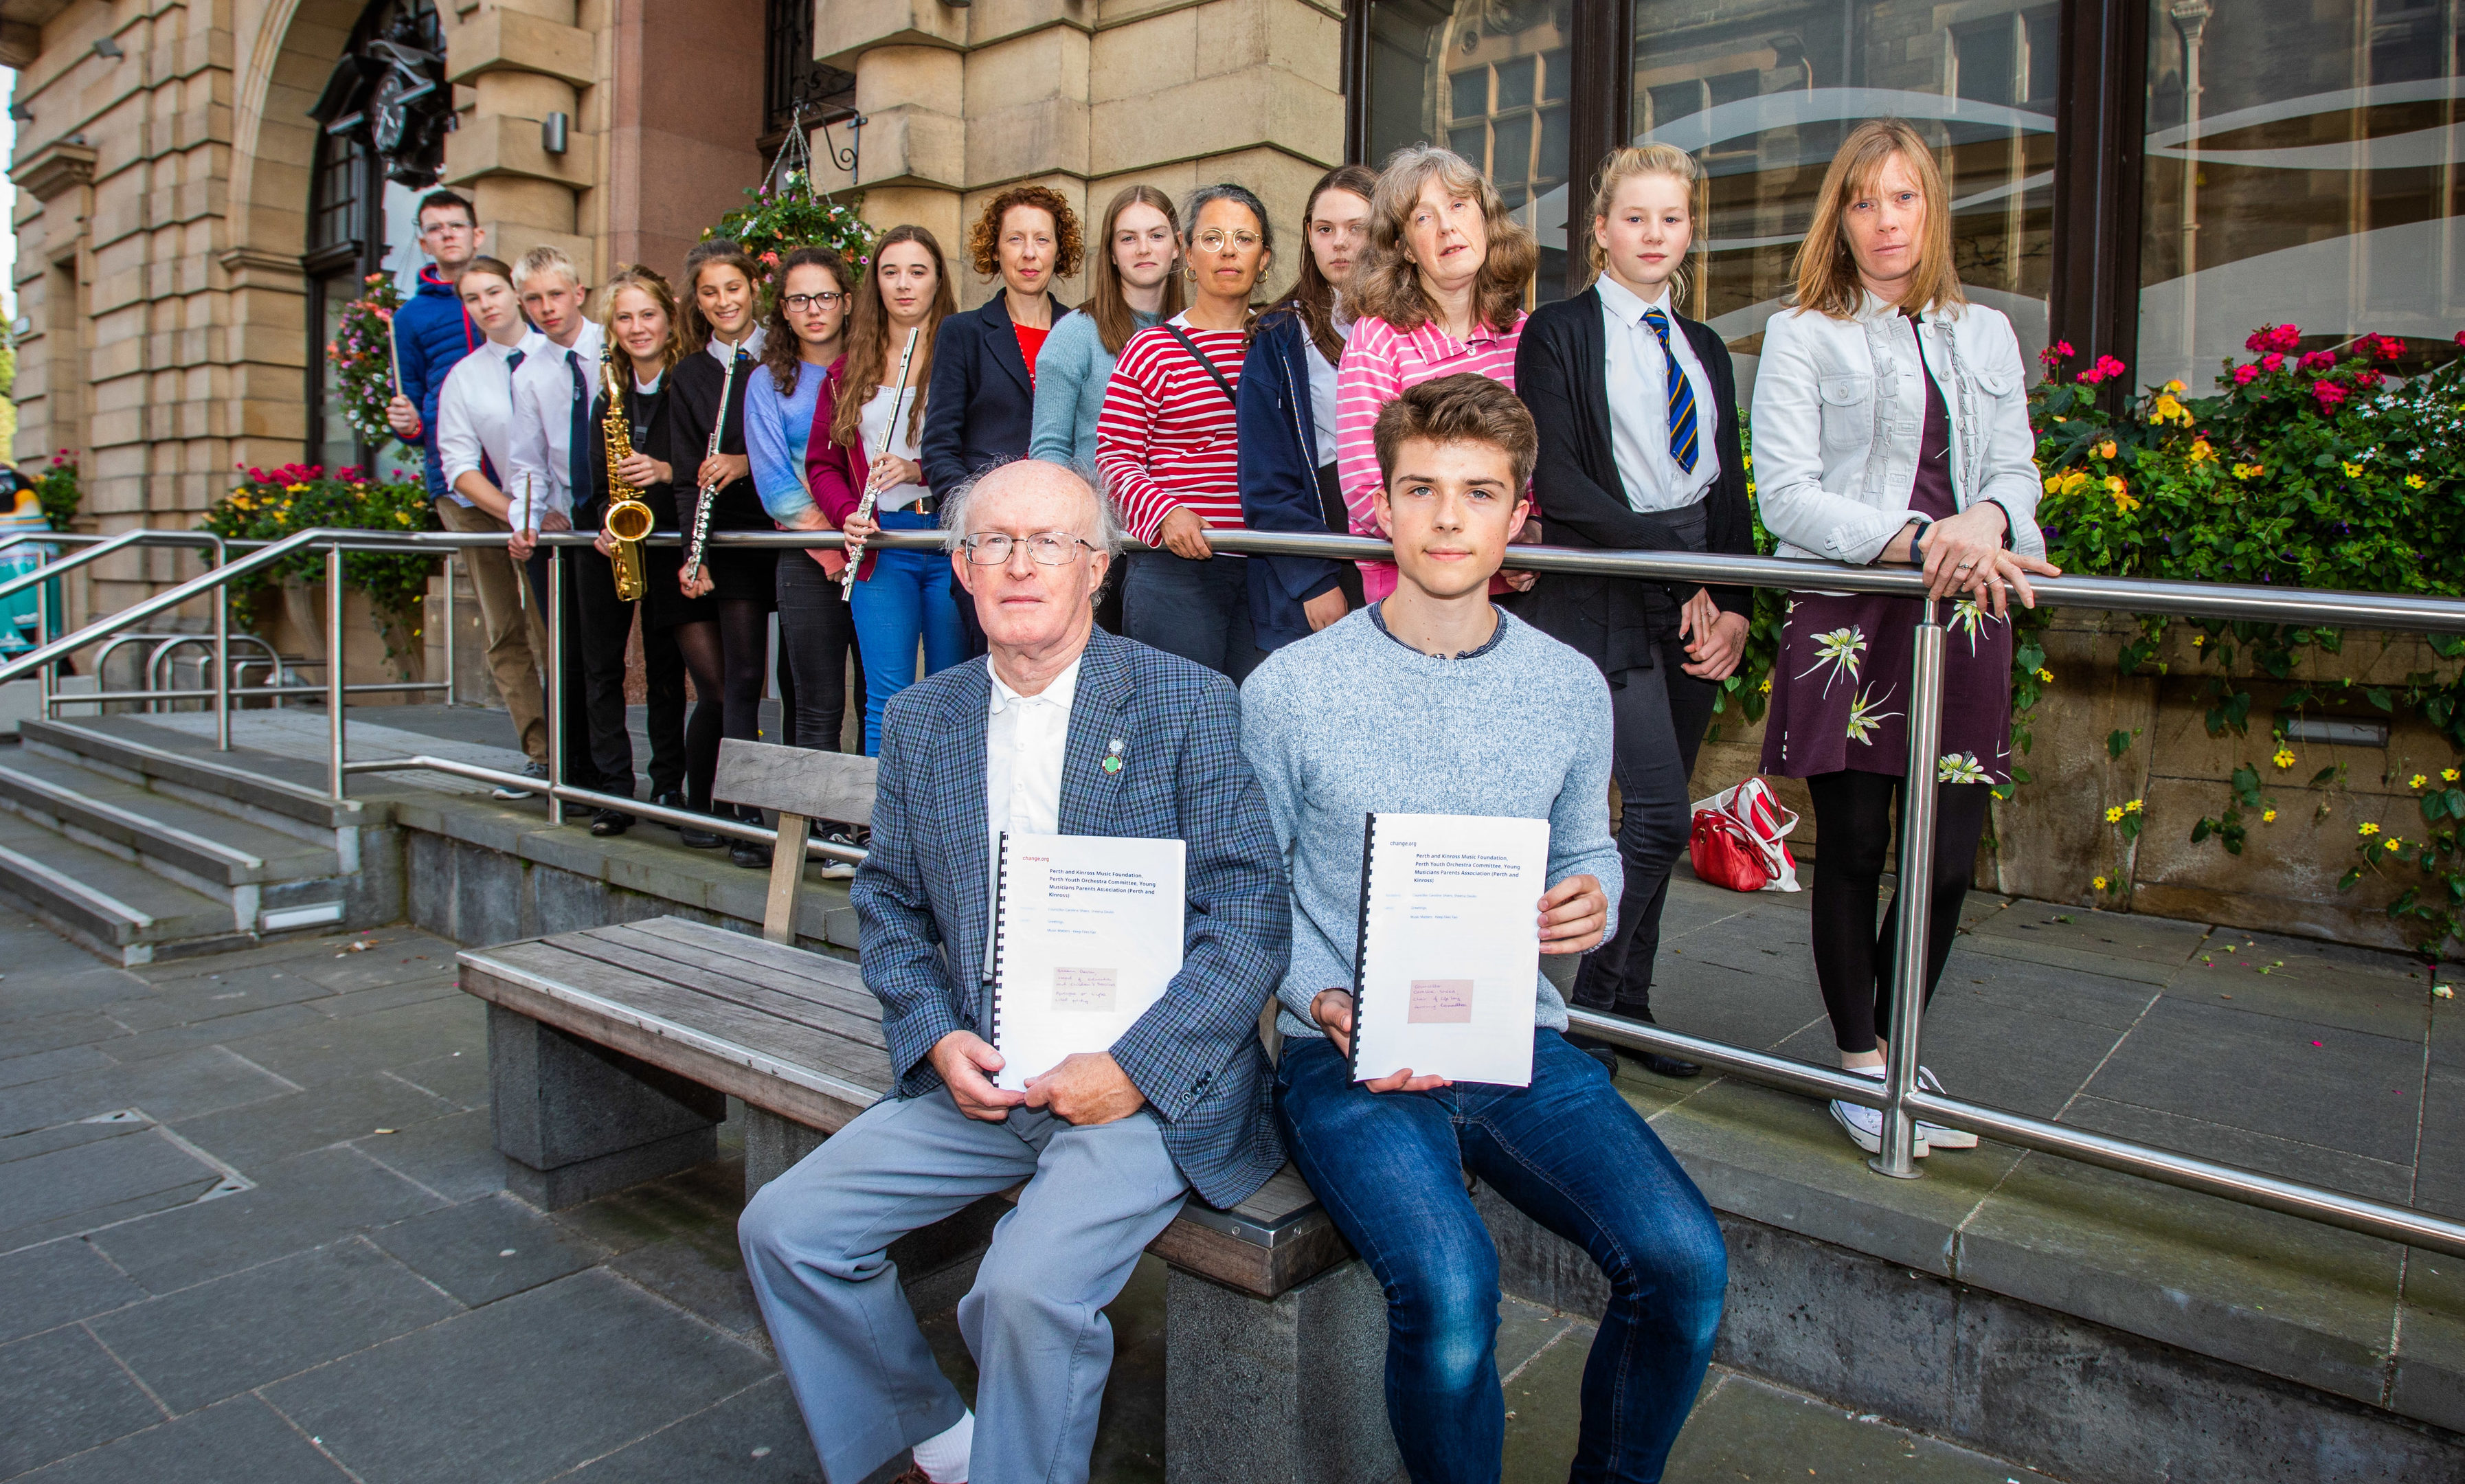 Protesting over tuition fees in 2018: At the front with the petitions are Alister Allan (left, first leader of Perth Youth Orchestra)  and Nicholas Baughan (right, current leader of Perth Youth Orchestra).